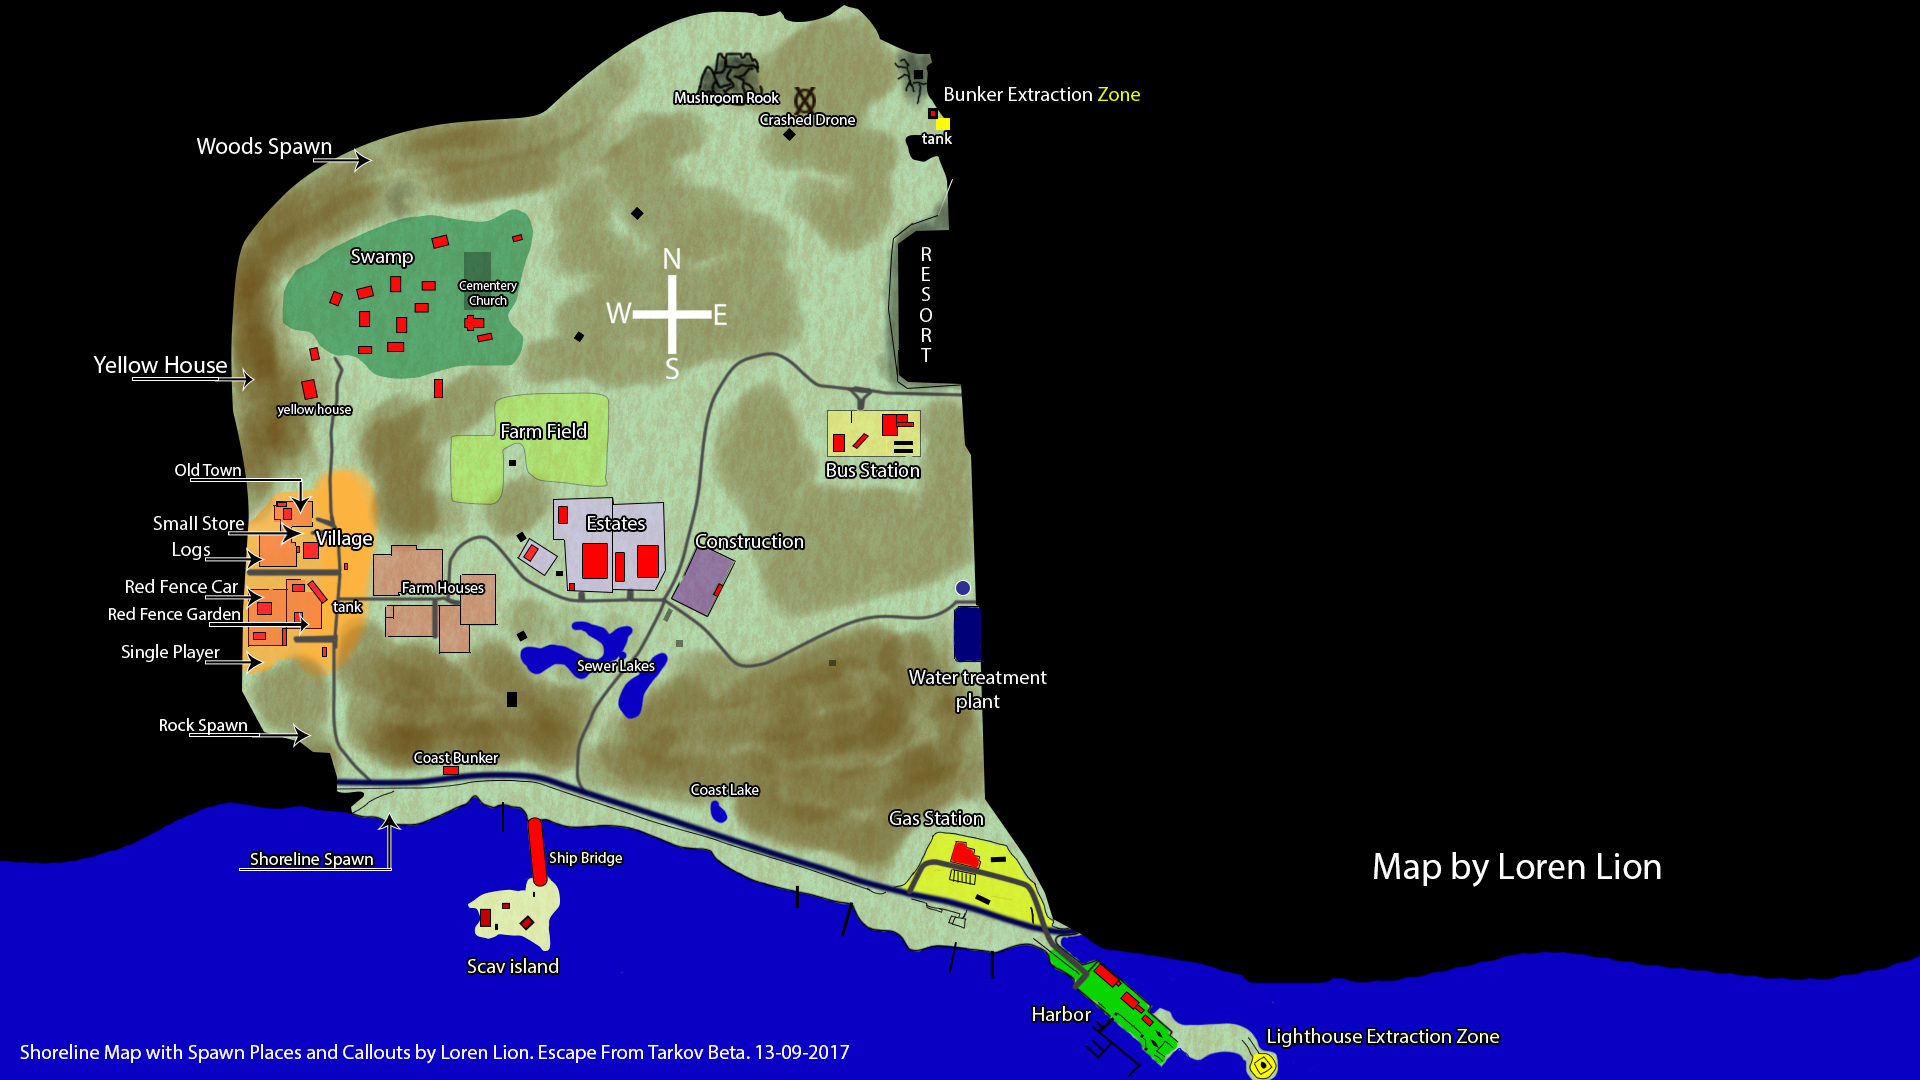 Shoreline Map Images - Reverse Search